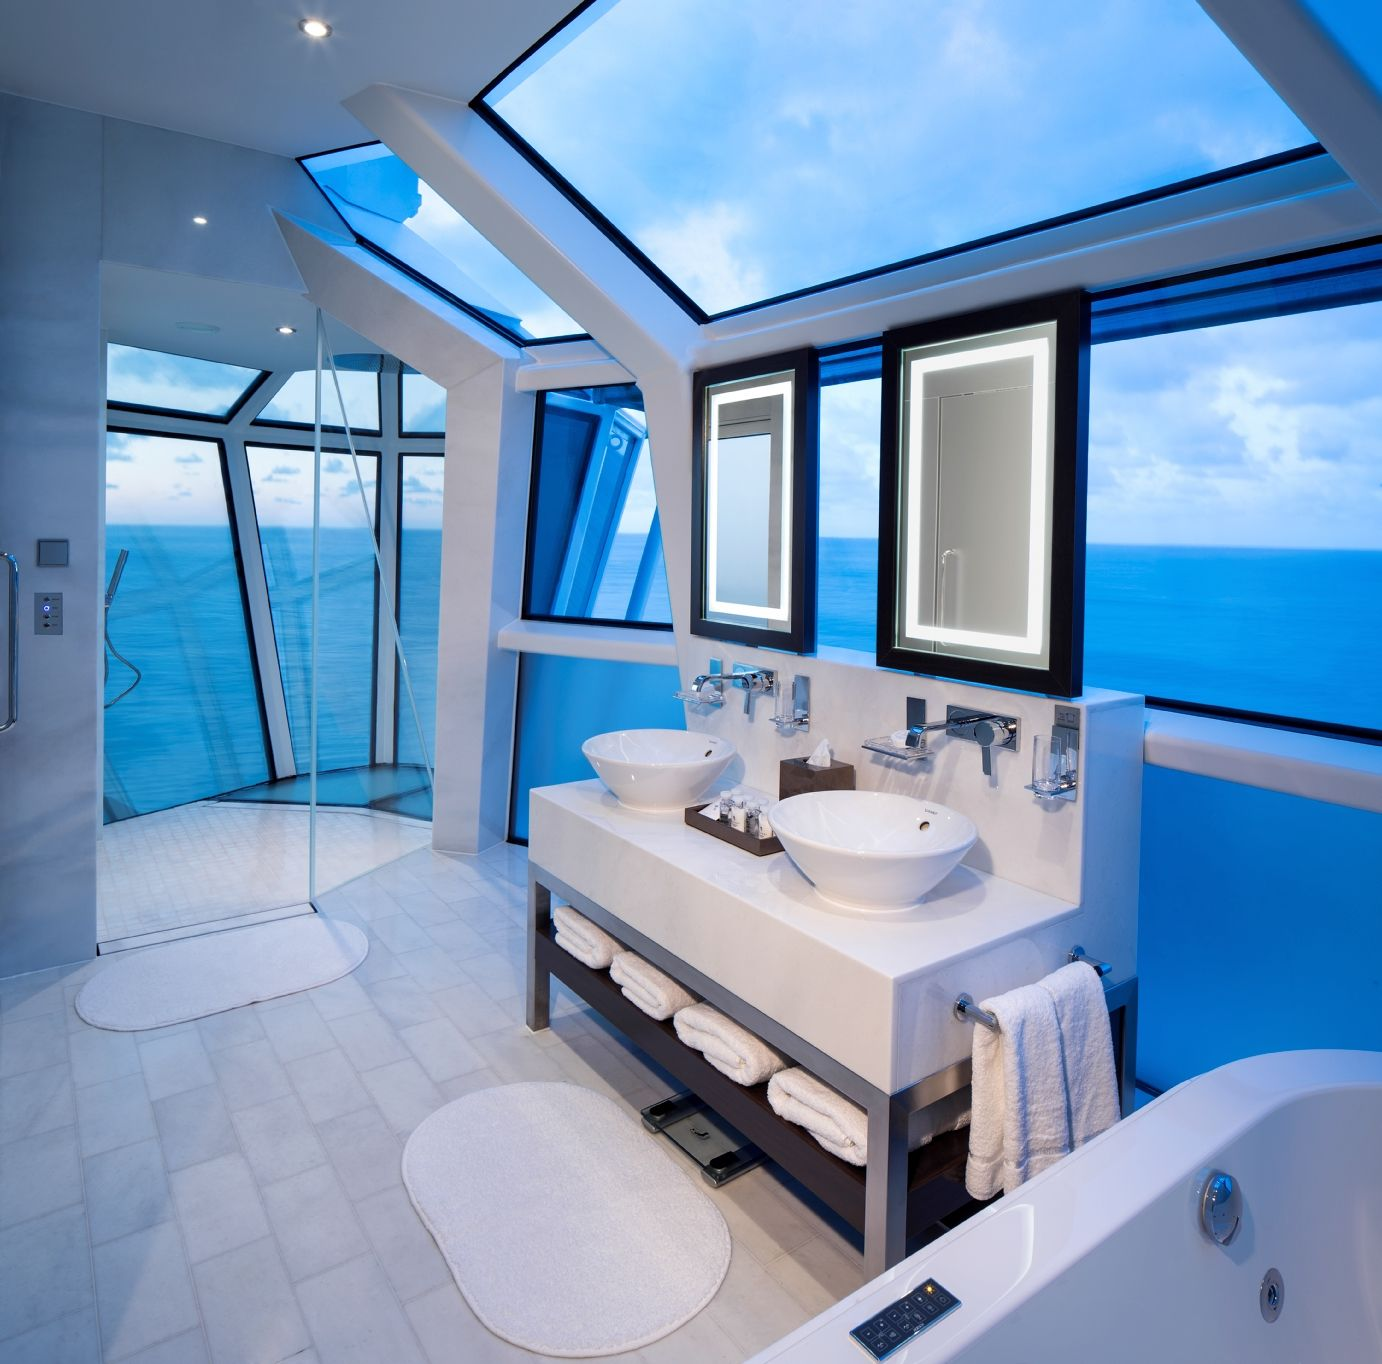 Luxurious Bathrooms Celebrity Reflection Suite Bathroom With Cantilever Shower 1 Of